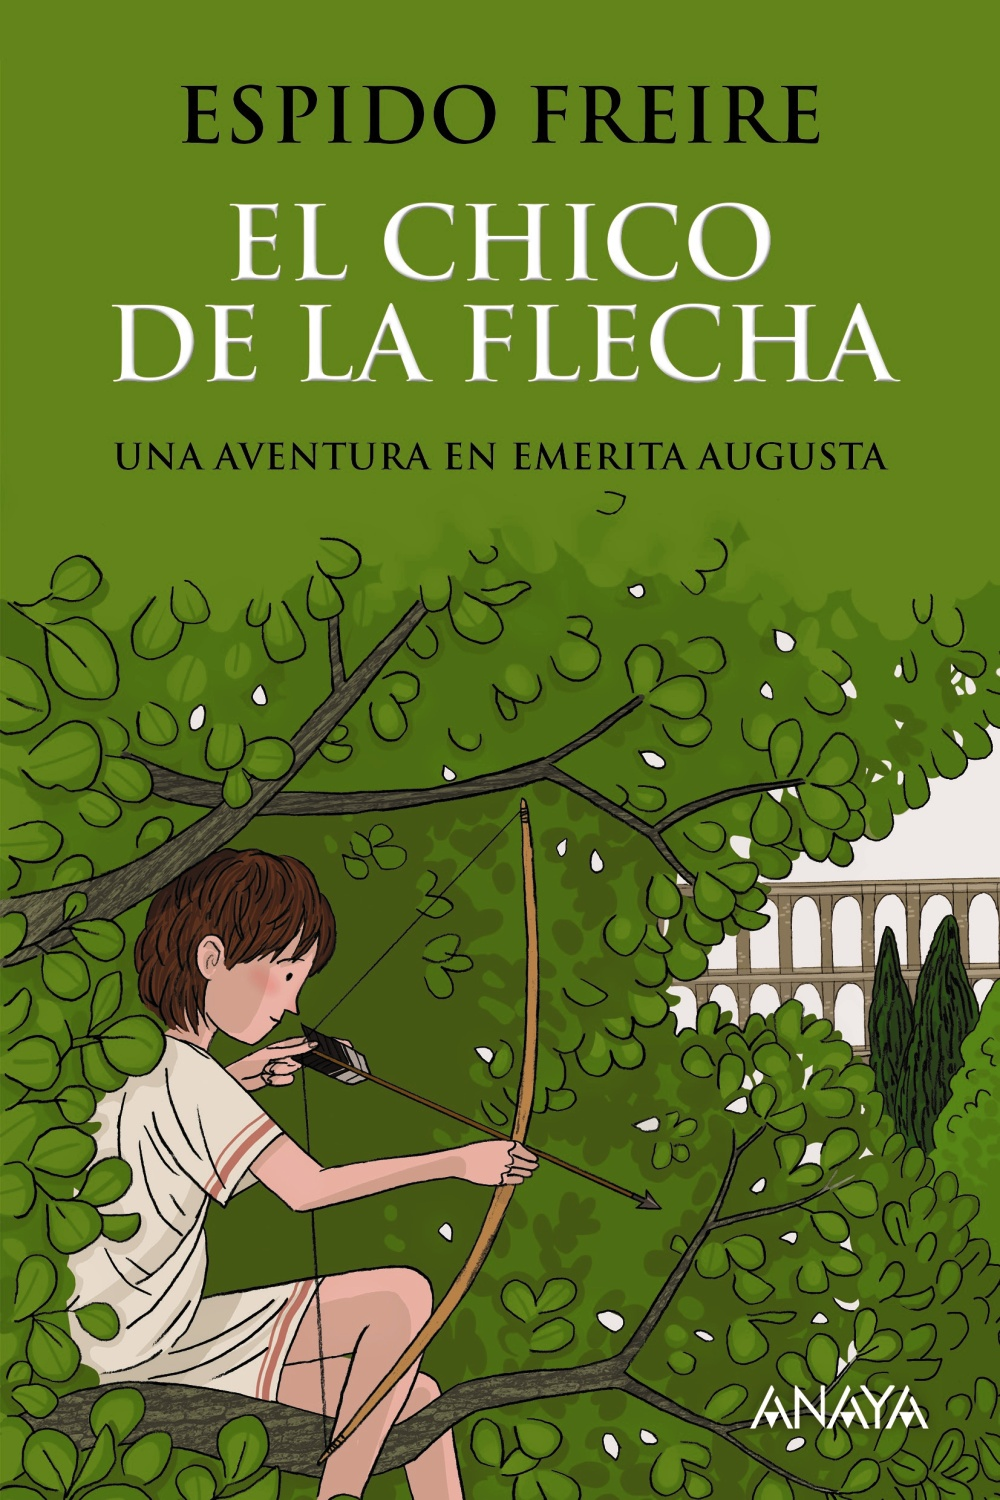 El chico de la flecha (ebook)